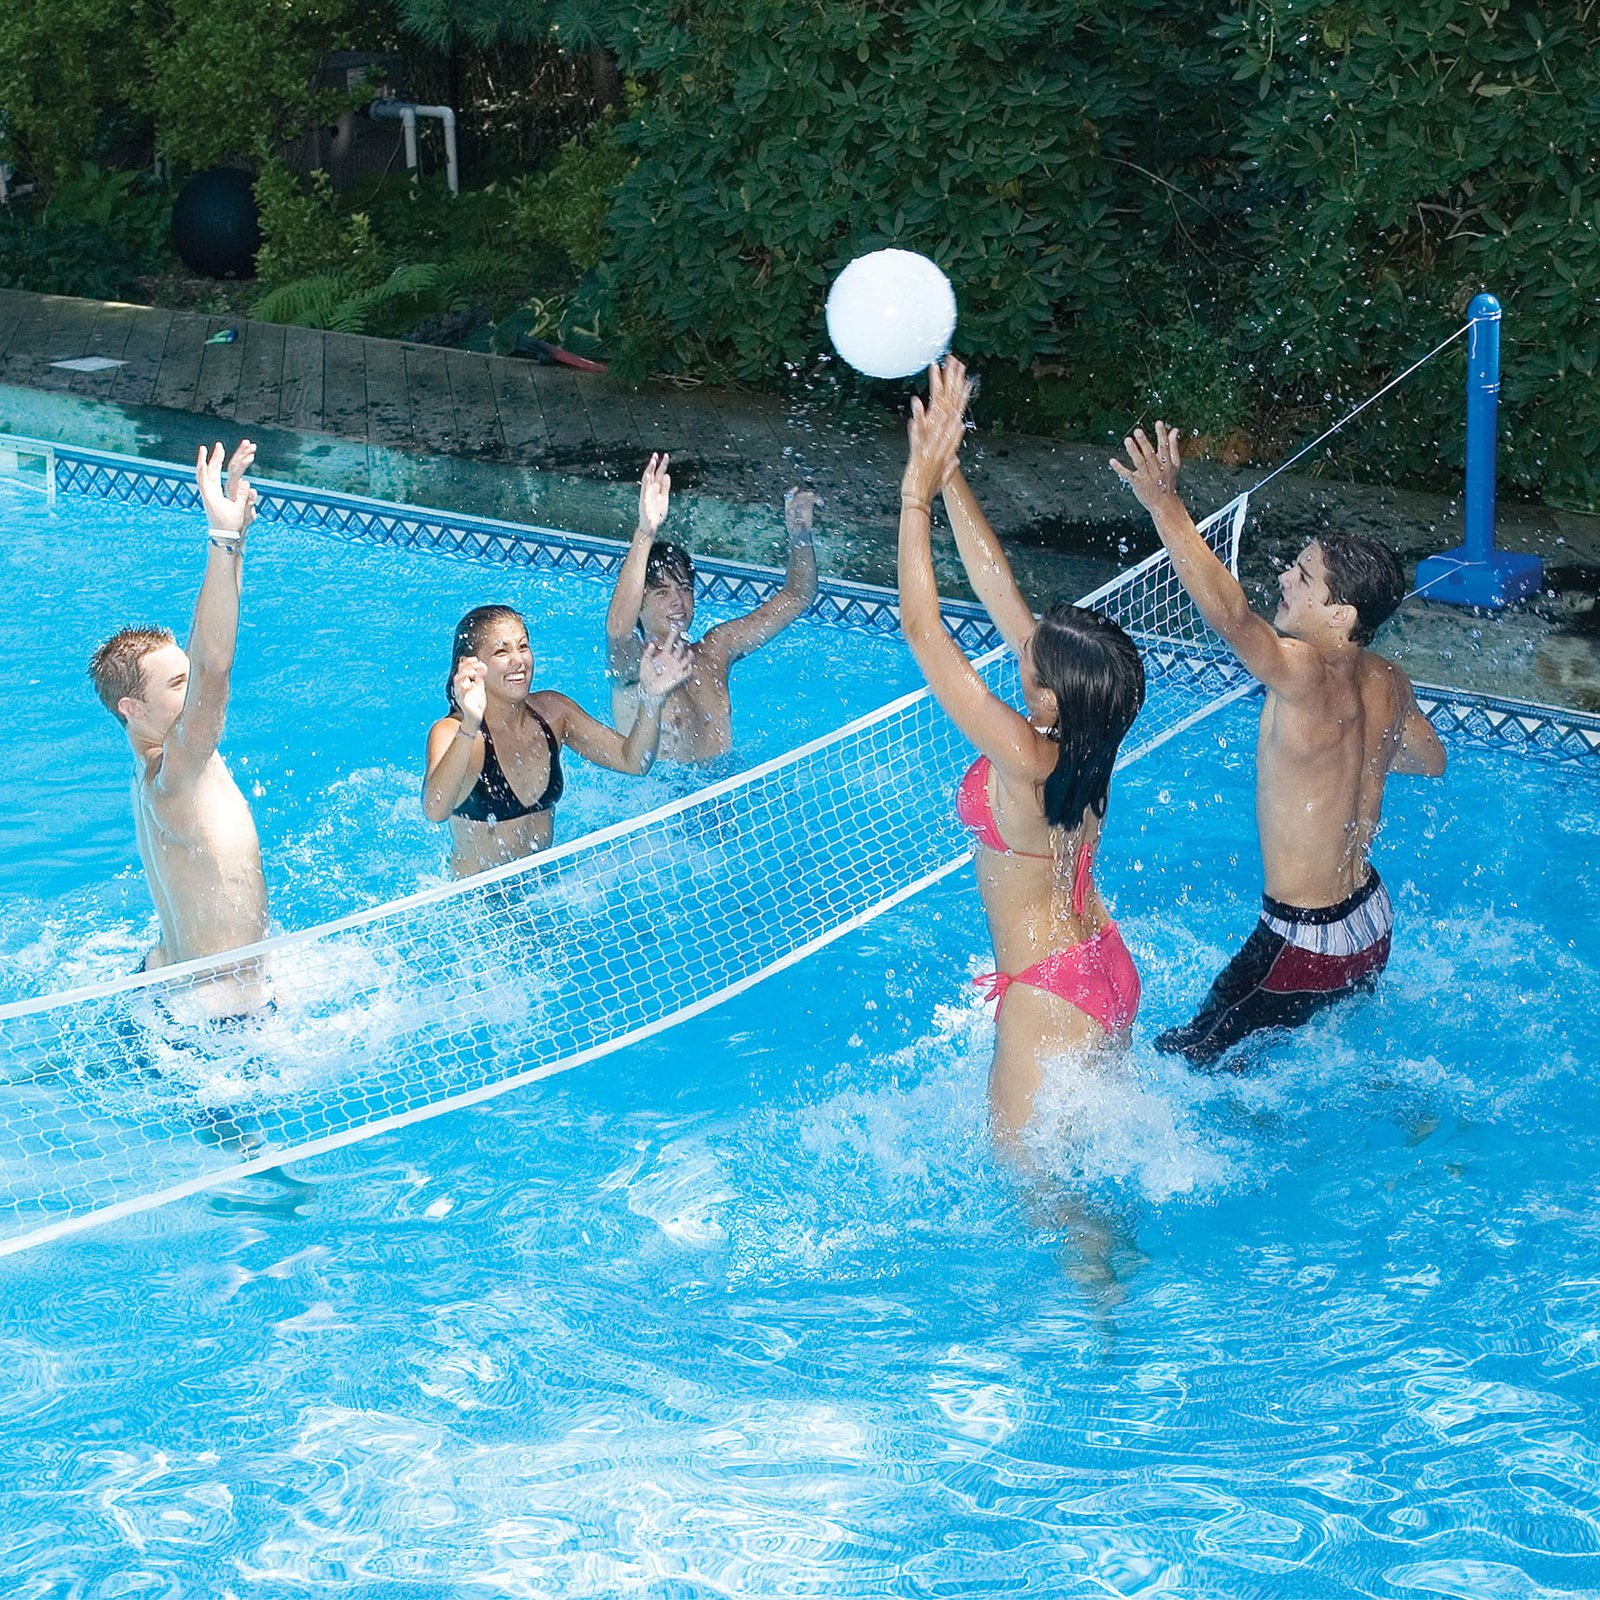 Swimline In-Ground Across Pool Volleyball Game for Swimming Pools by Swimline